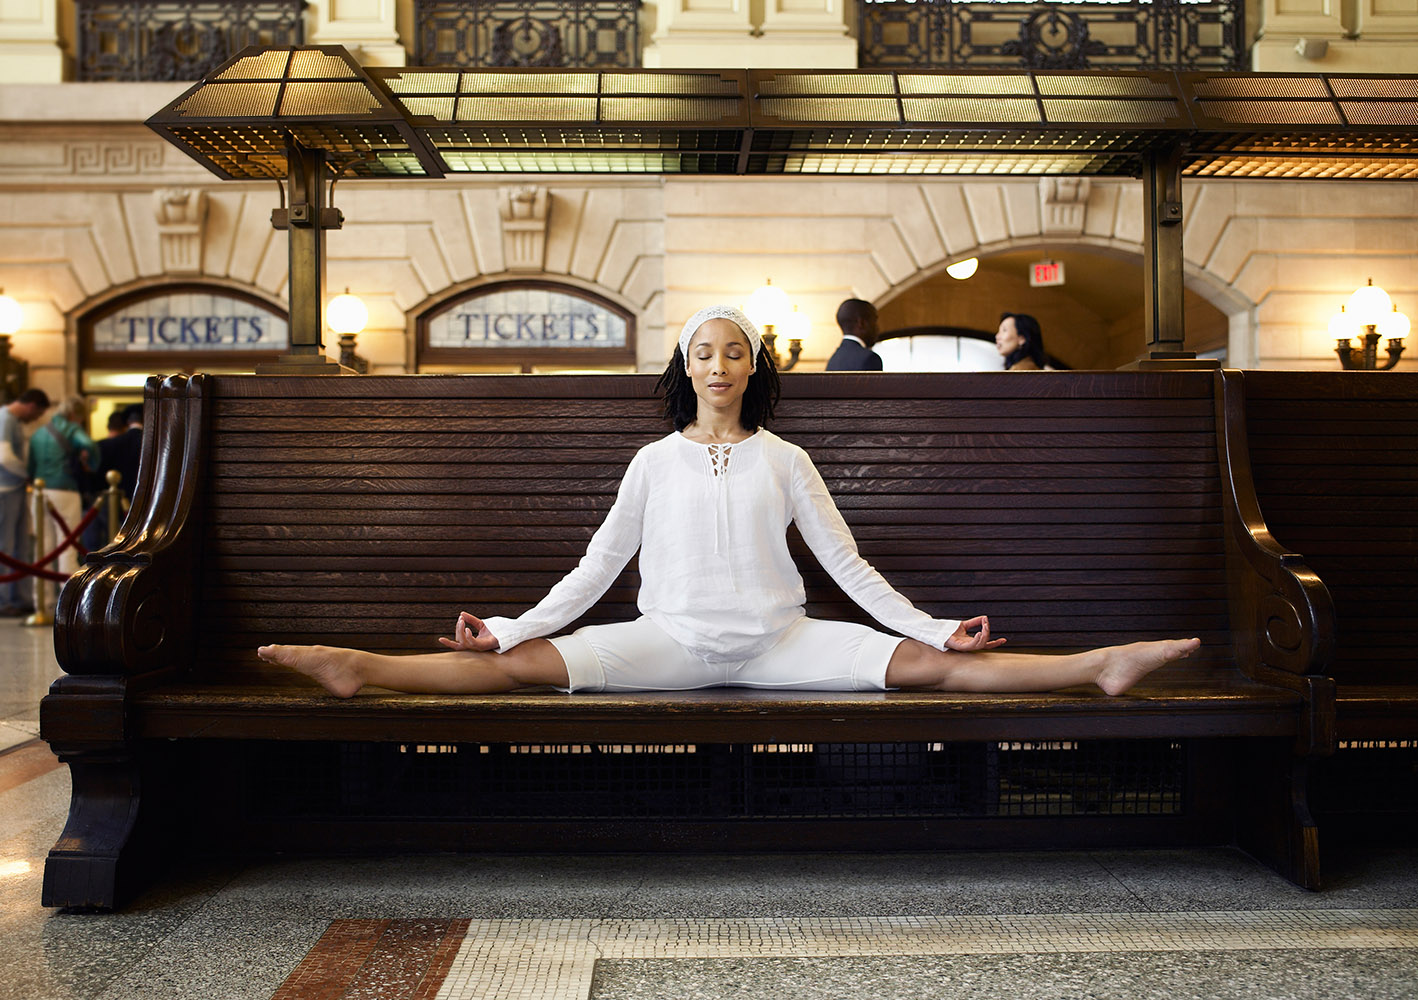 Yoga everywhere for American Express and NJ Transit